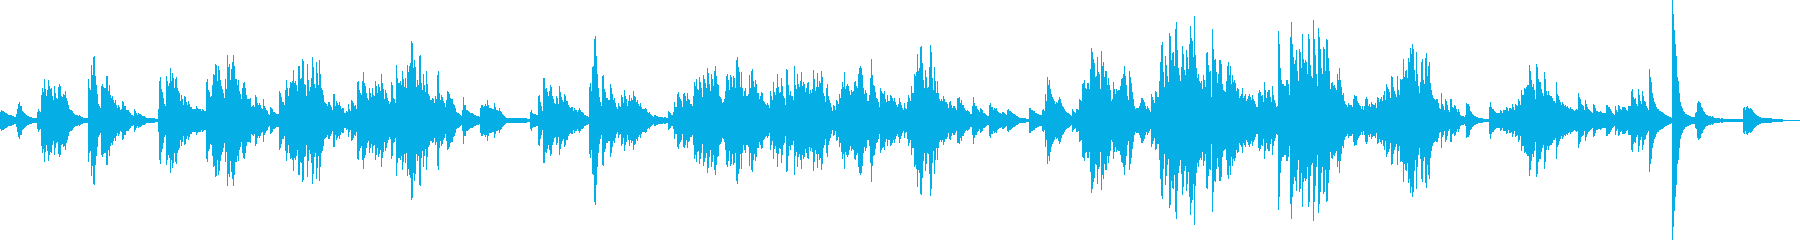 A sad and moody piano solo's reproduced waveform